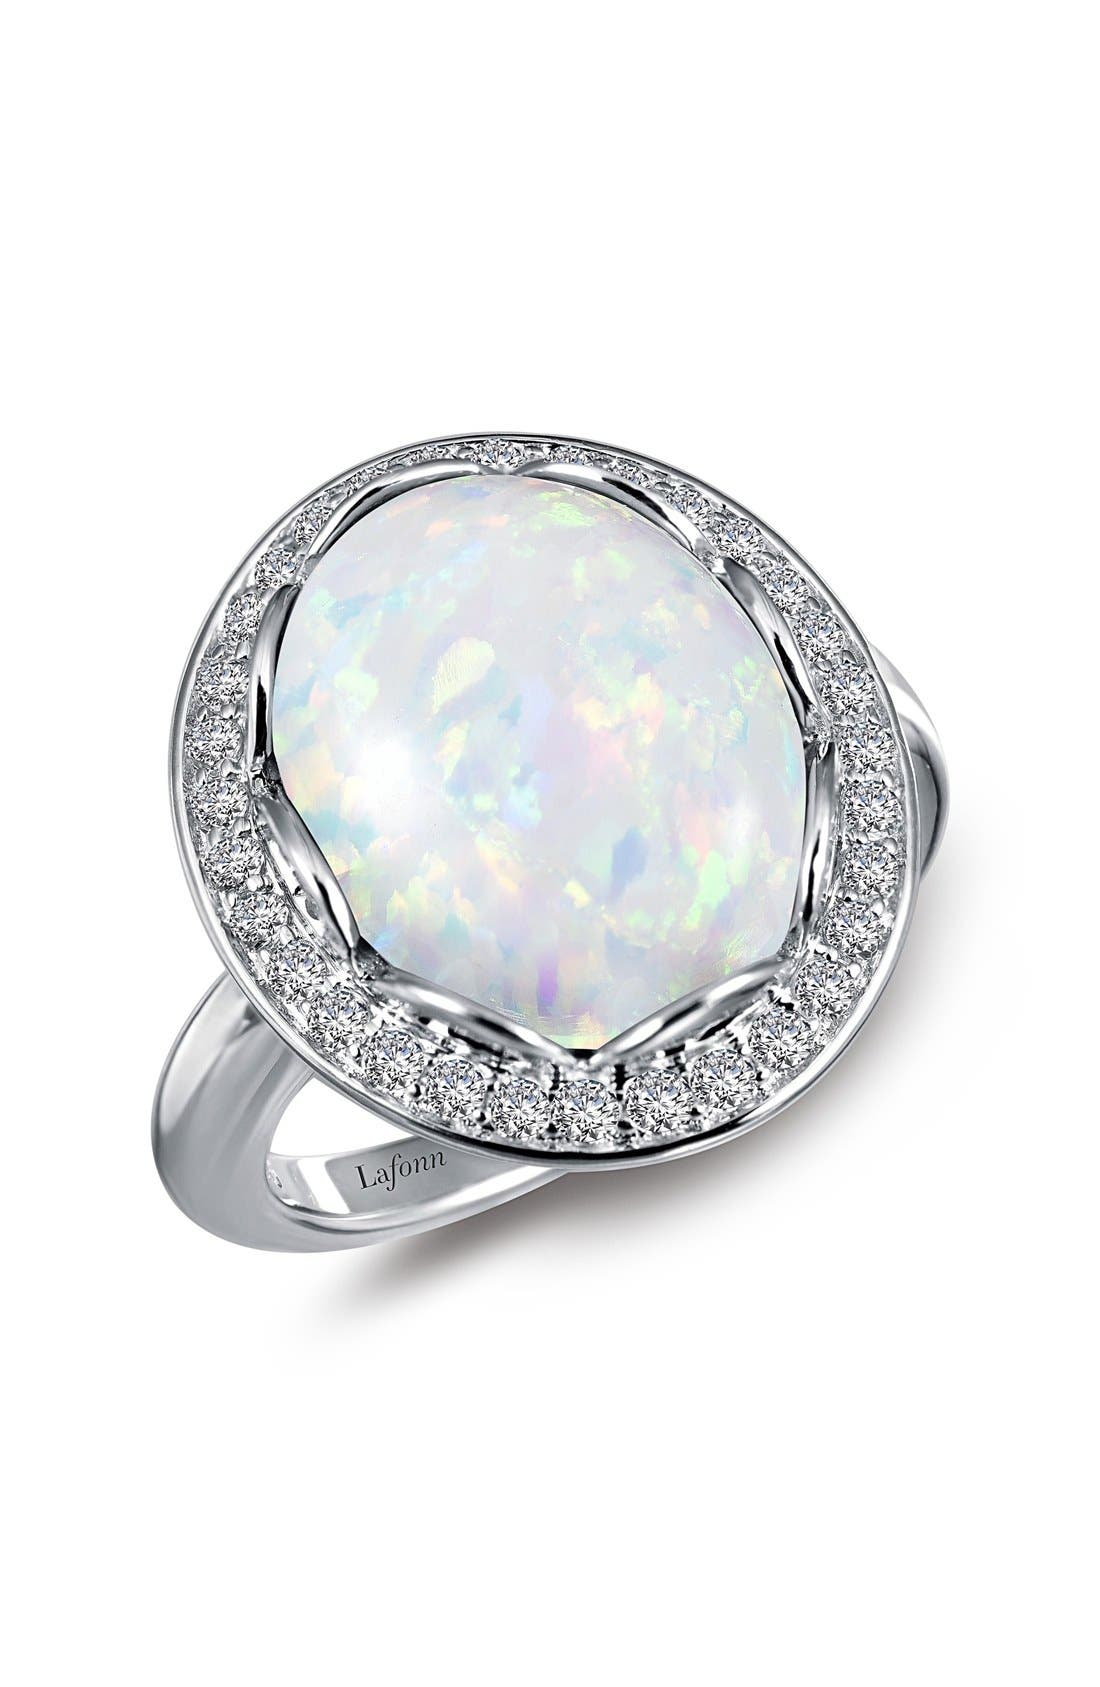 Simulated Opal Halo Ring,                         Main,                         color, Silver